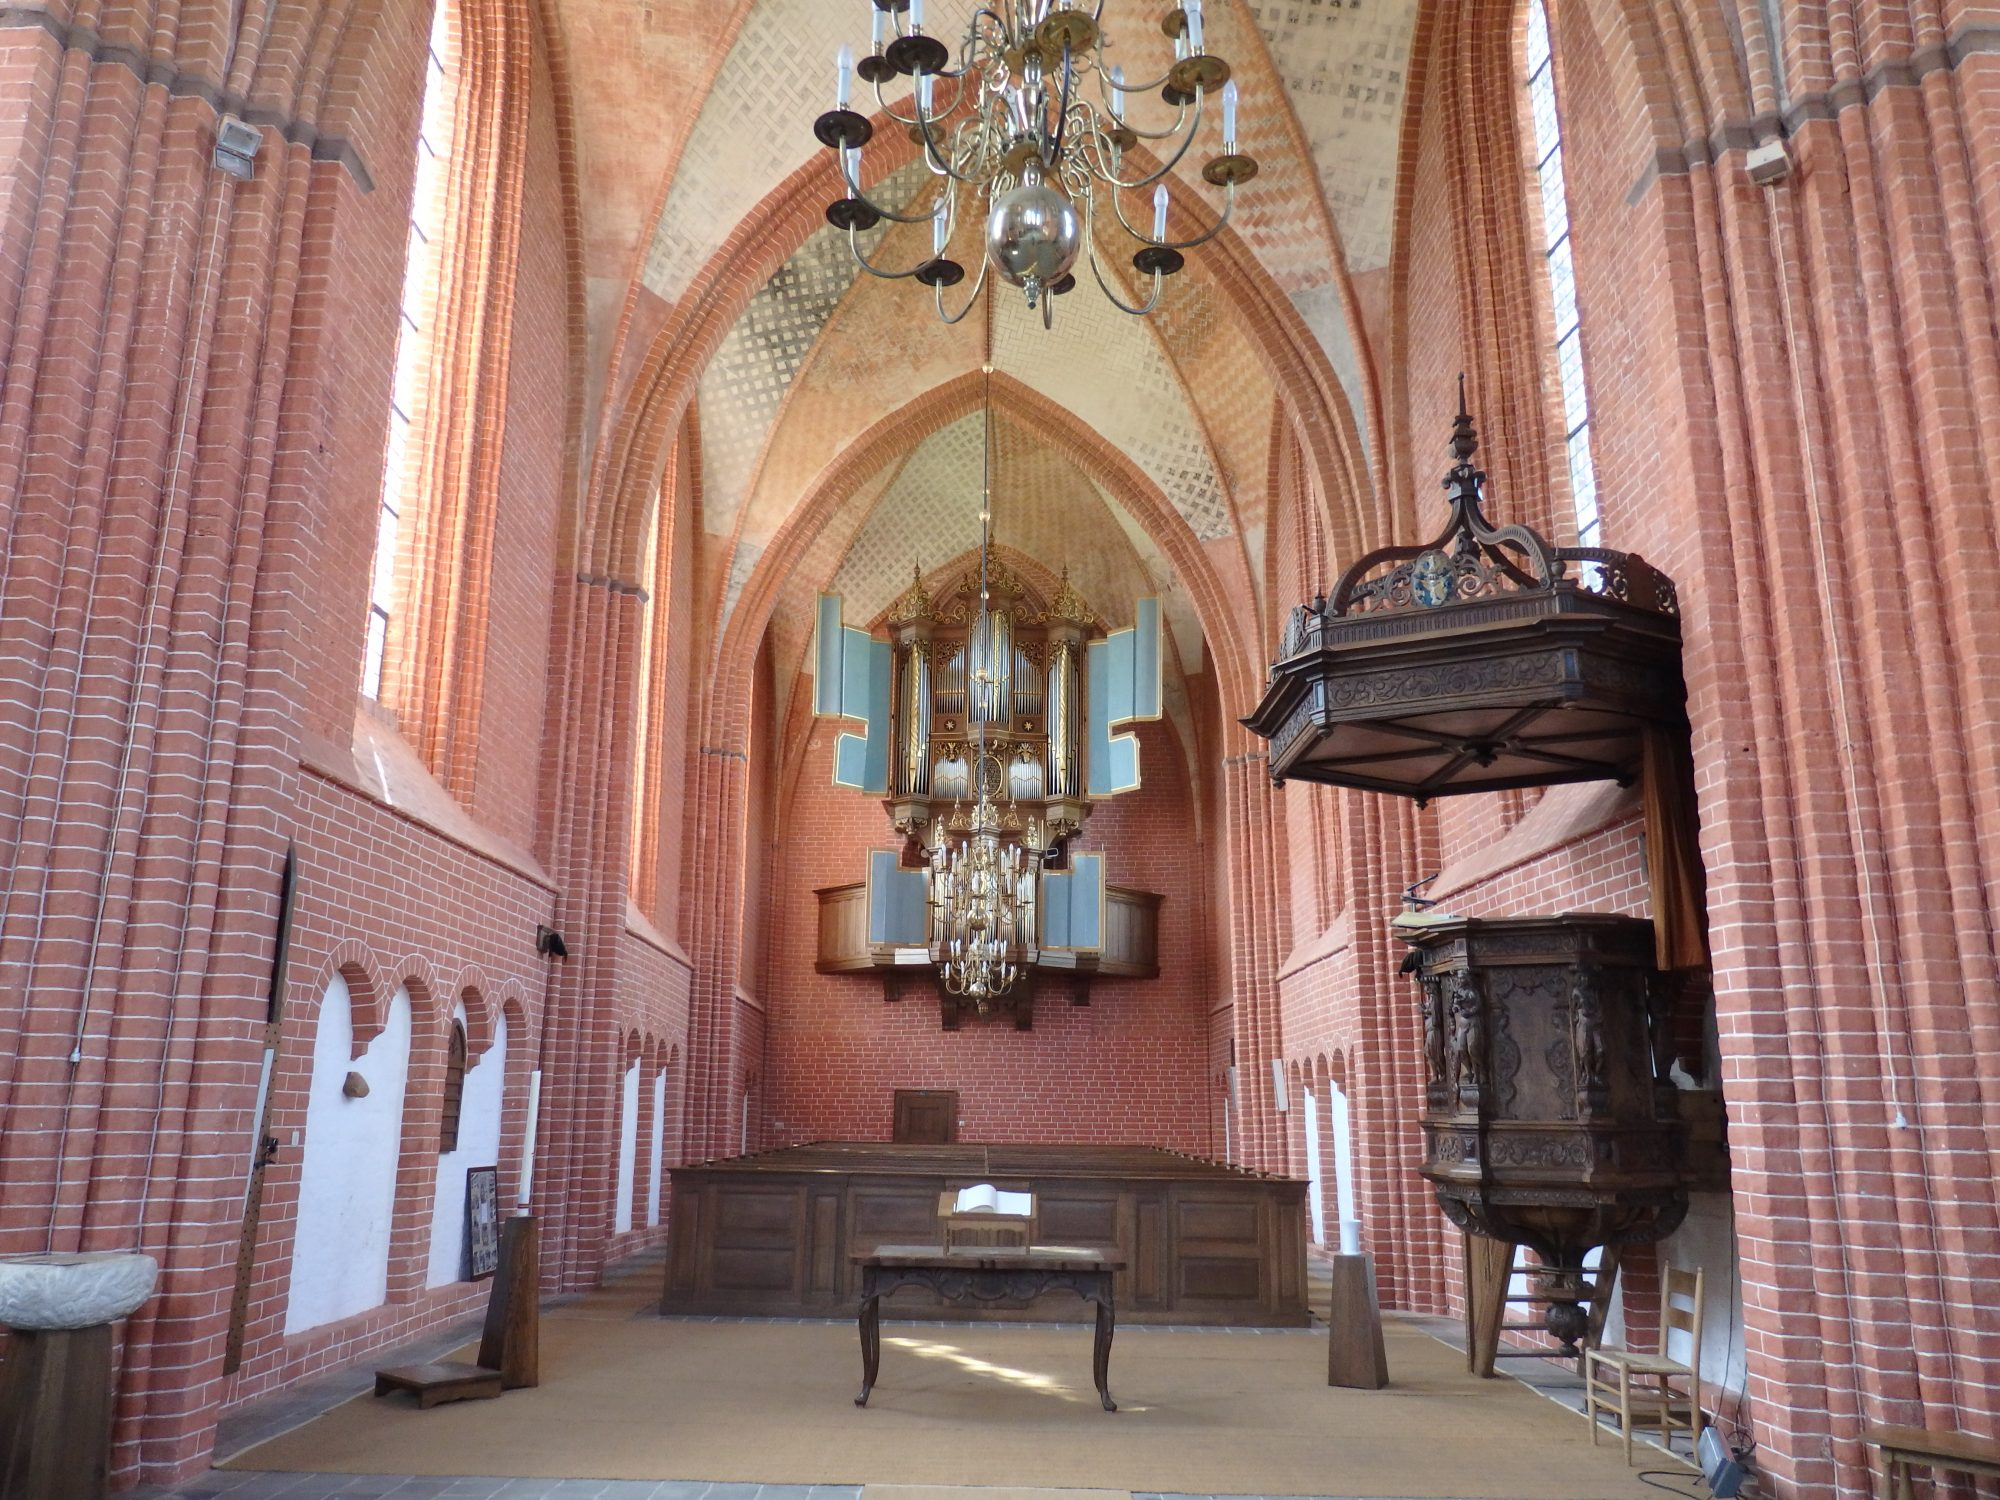 The interior of Zeerijp church in Groningen